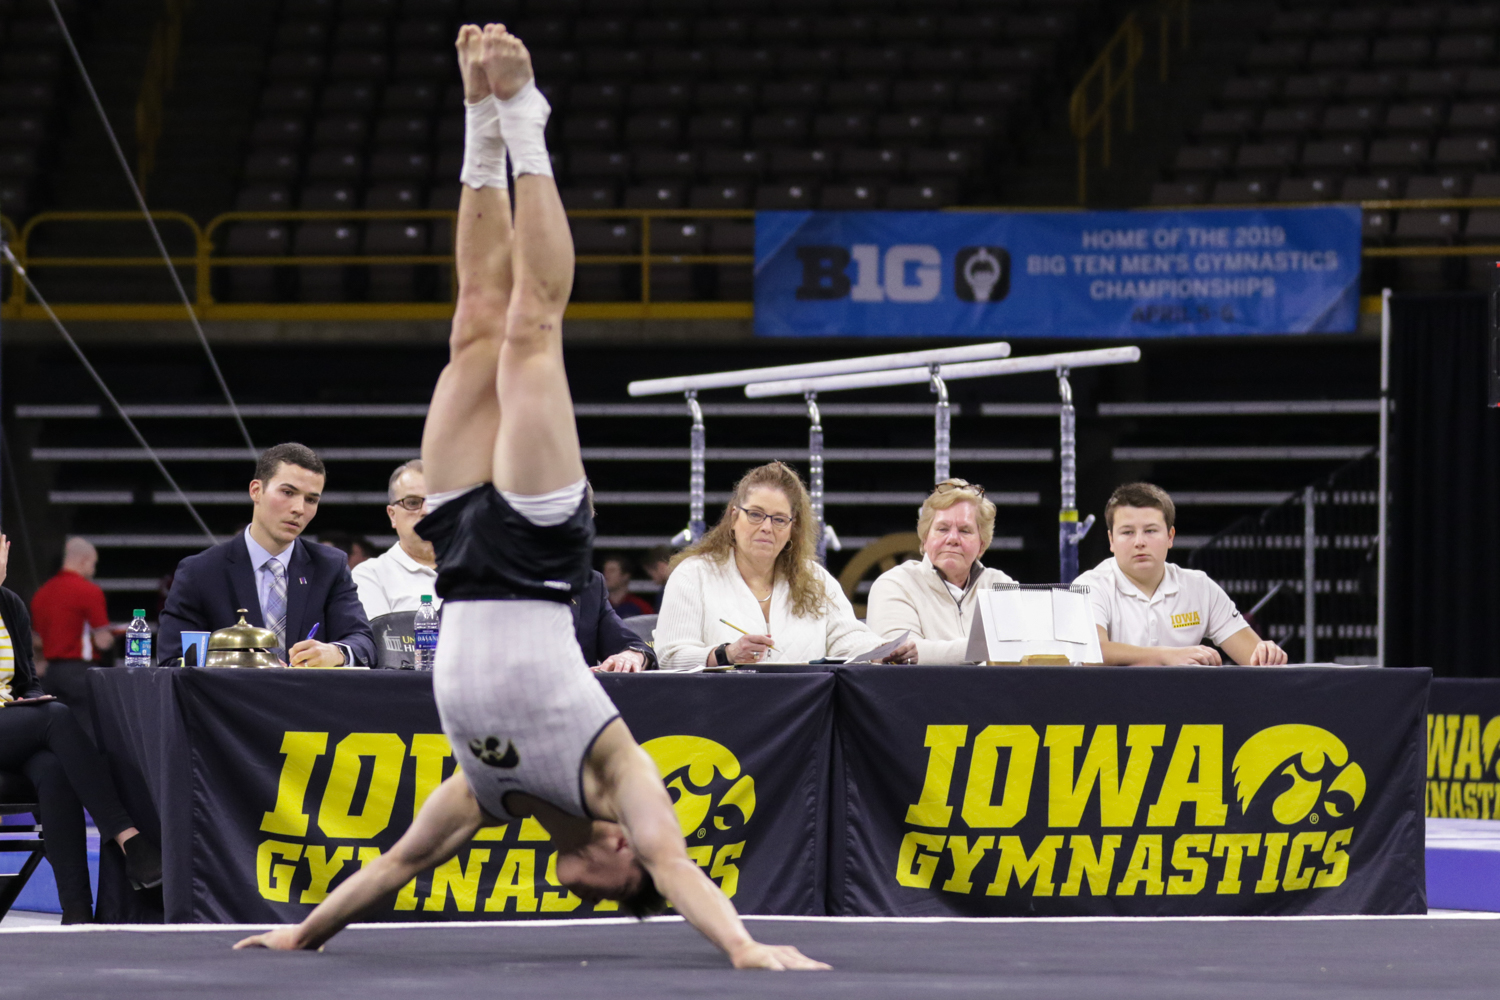 Judges watch Iowa gymnast Bennet Huang perform on the floor during a gymnastics meet against Minnesota and Illinois-Chicago on Saturday, Feb 2, 2019. The Golden Gophers won the meet with a total score of 406.400 with the Hawkeyes scoring 401.600 and the Flames scoring 355.750.